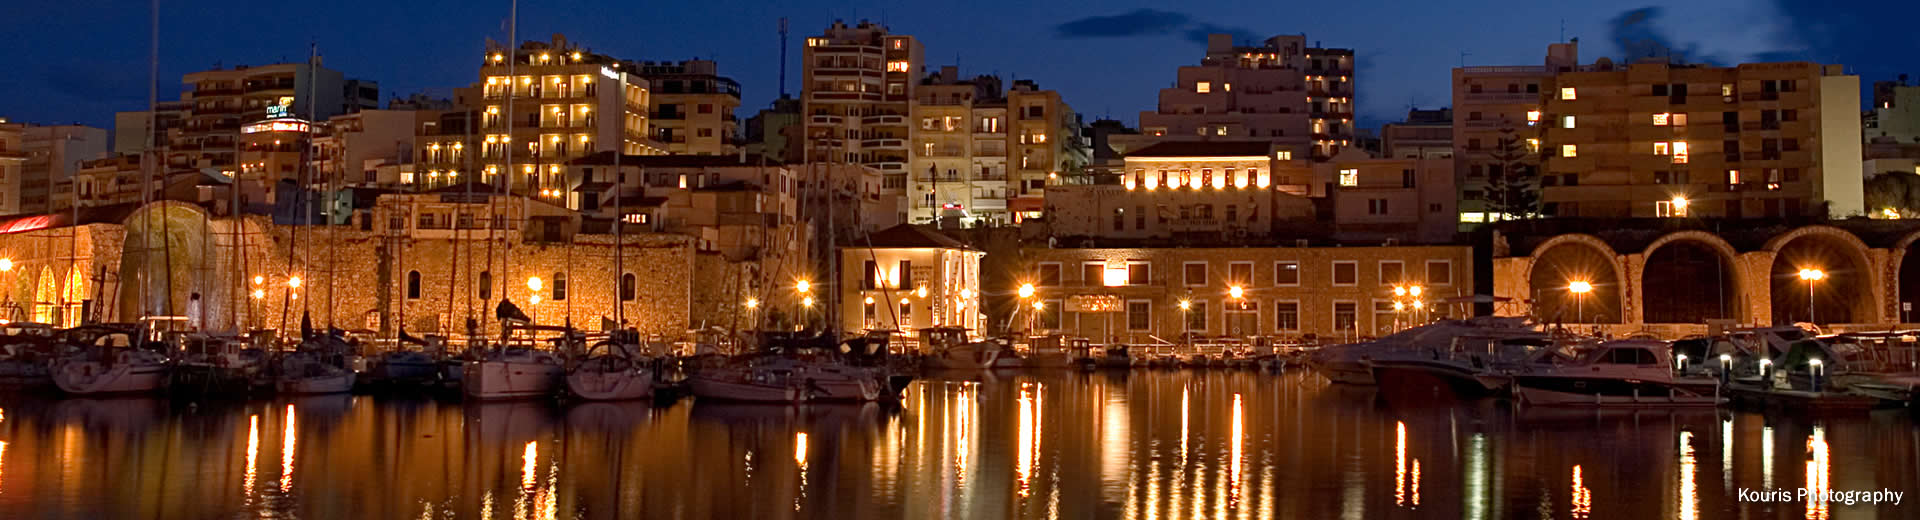 heraklion2